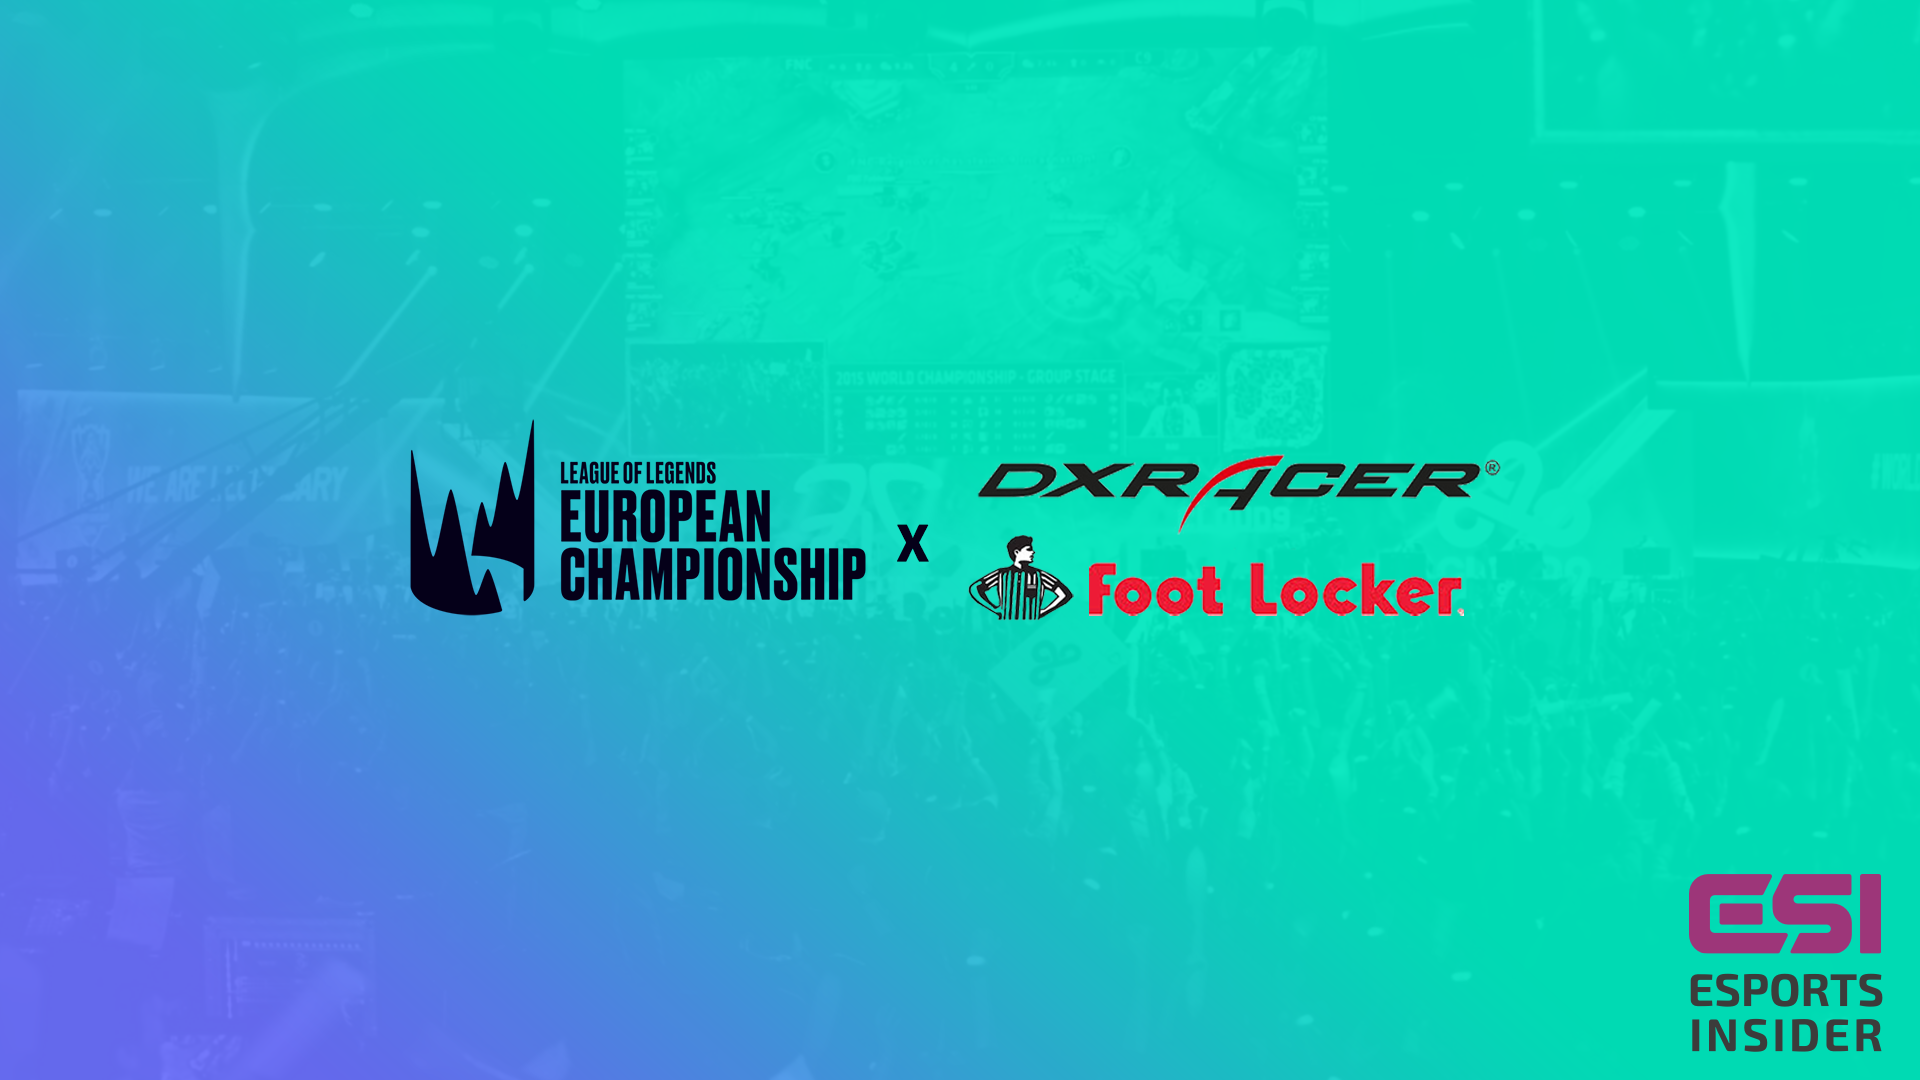 LEC DXRacer Foot Locker - LEC adds DXRacer and Foot Locker as partners for 2019 season